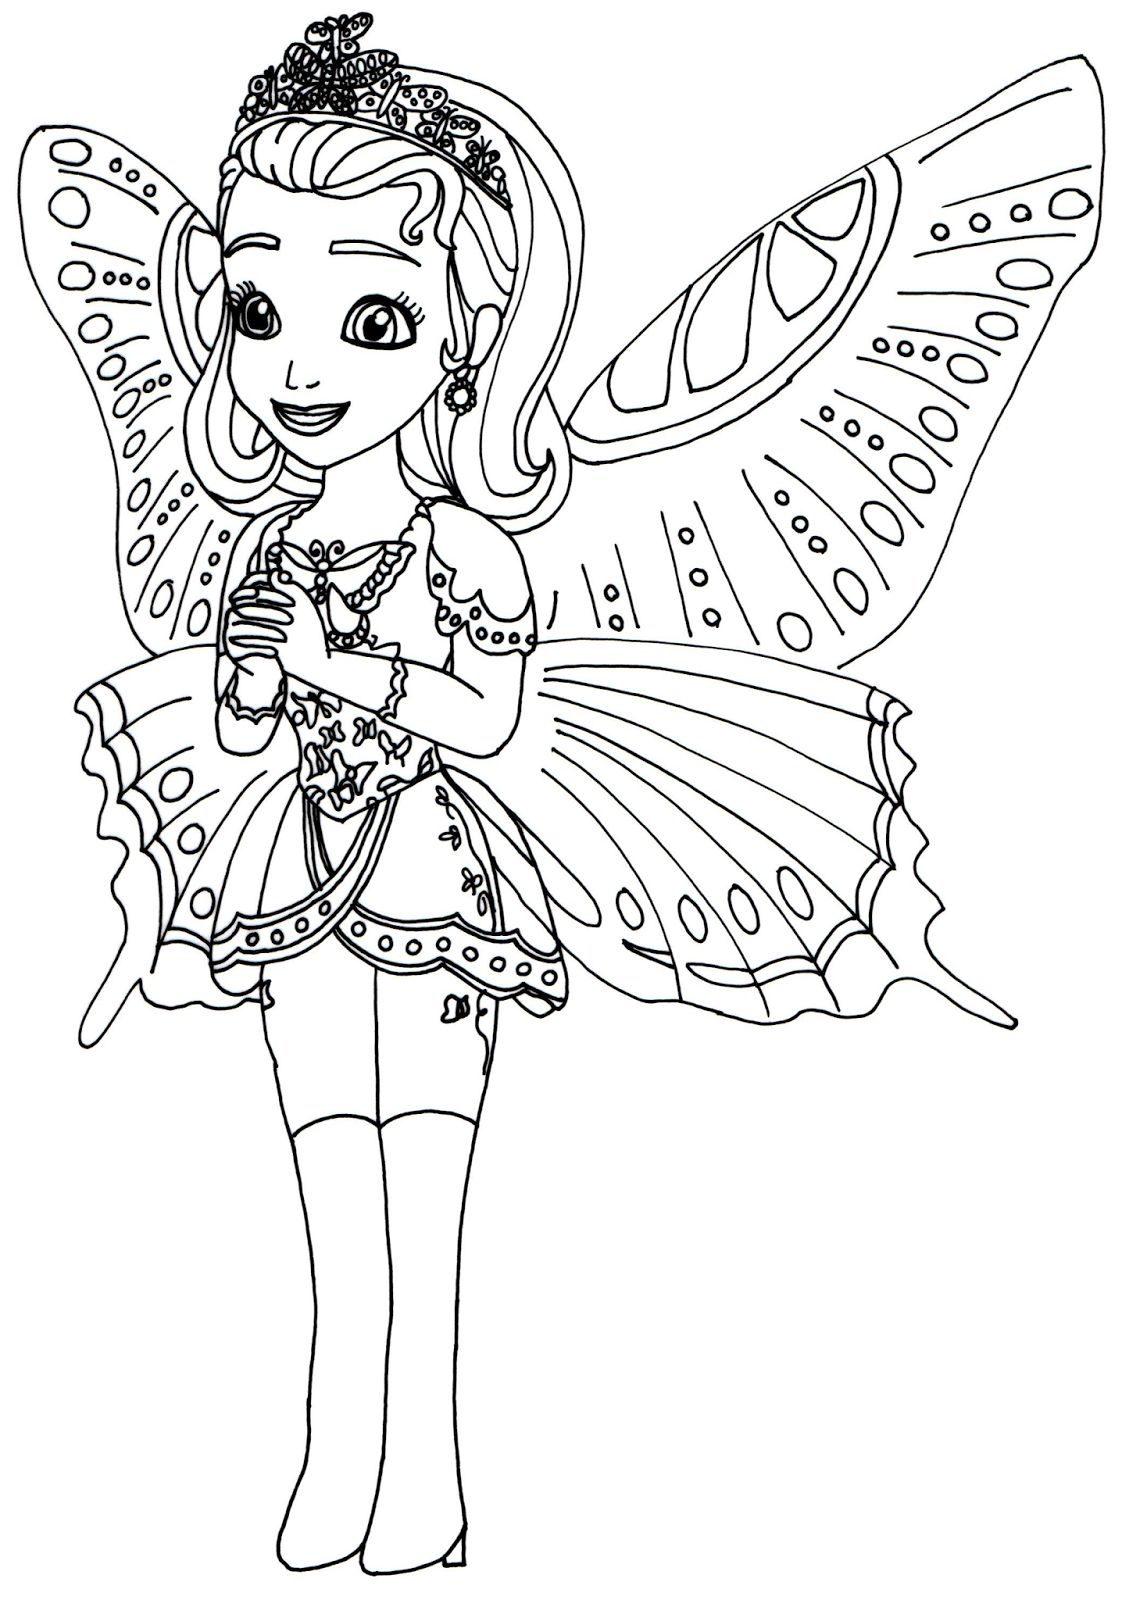 Princess sophia printable coloring pages - Sofia The First Coloring Pages Princess Butterfly Sofia The First Coloring Page